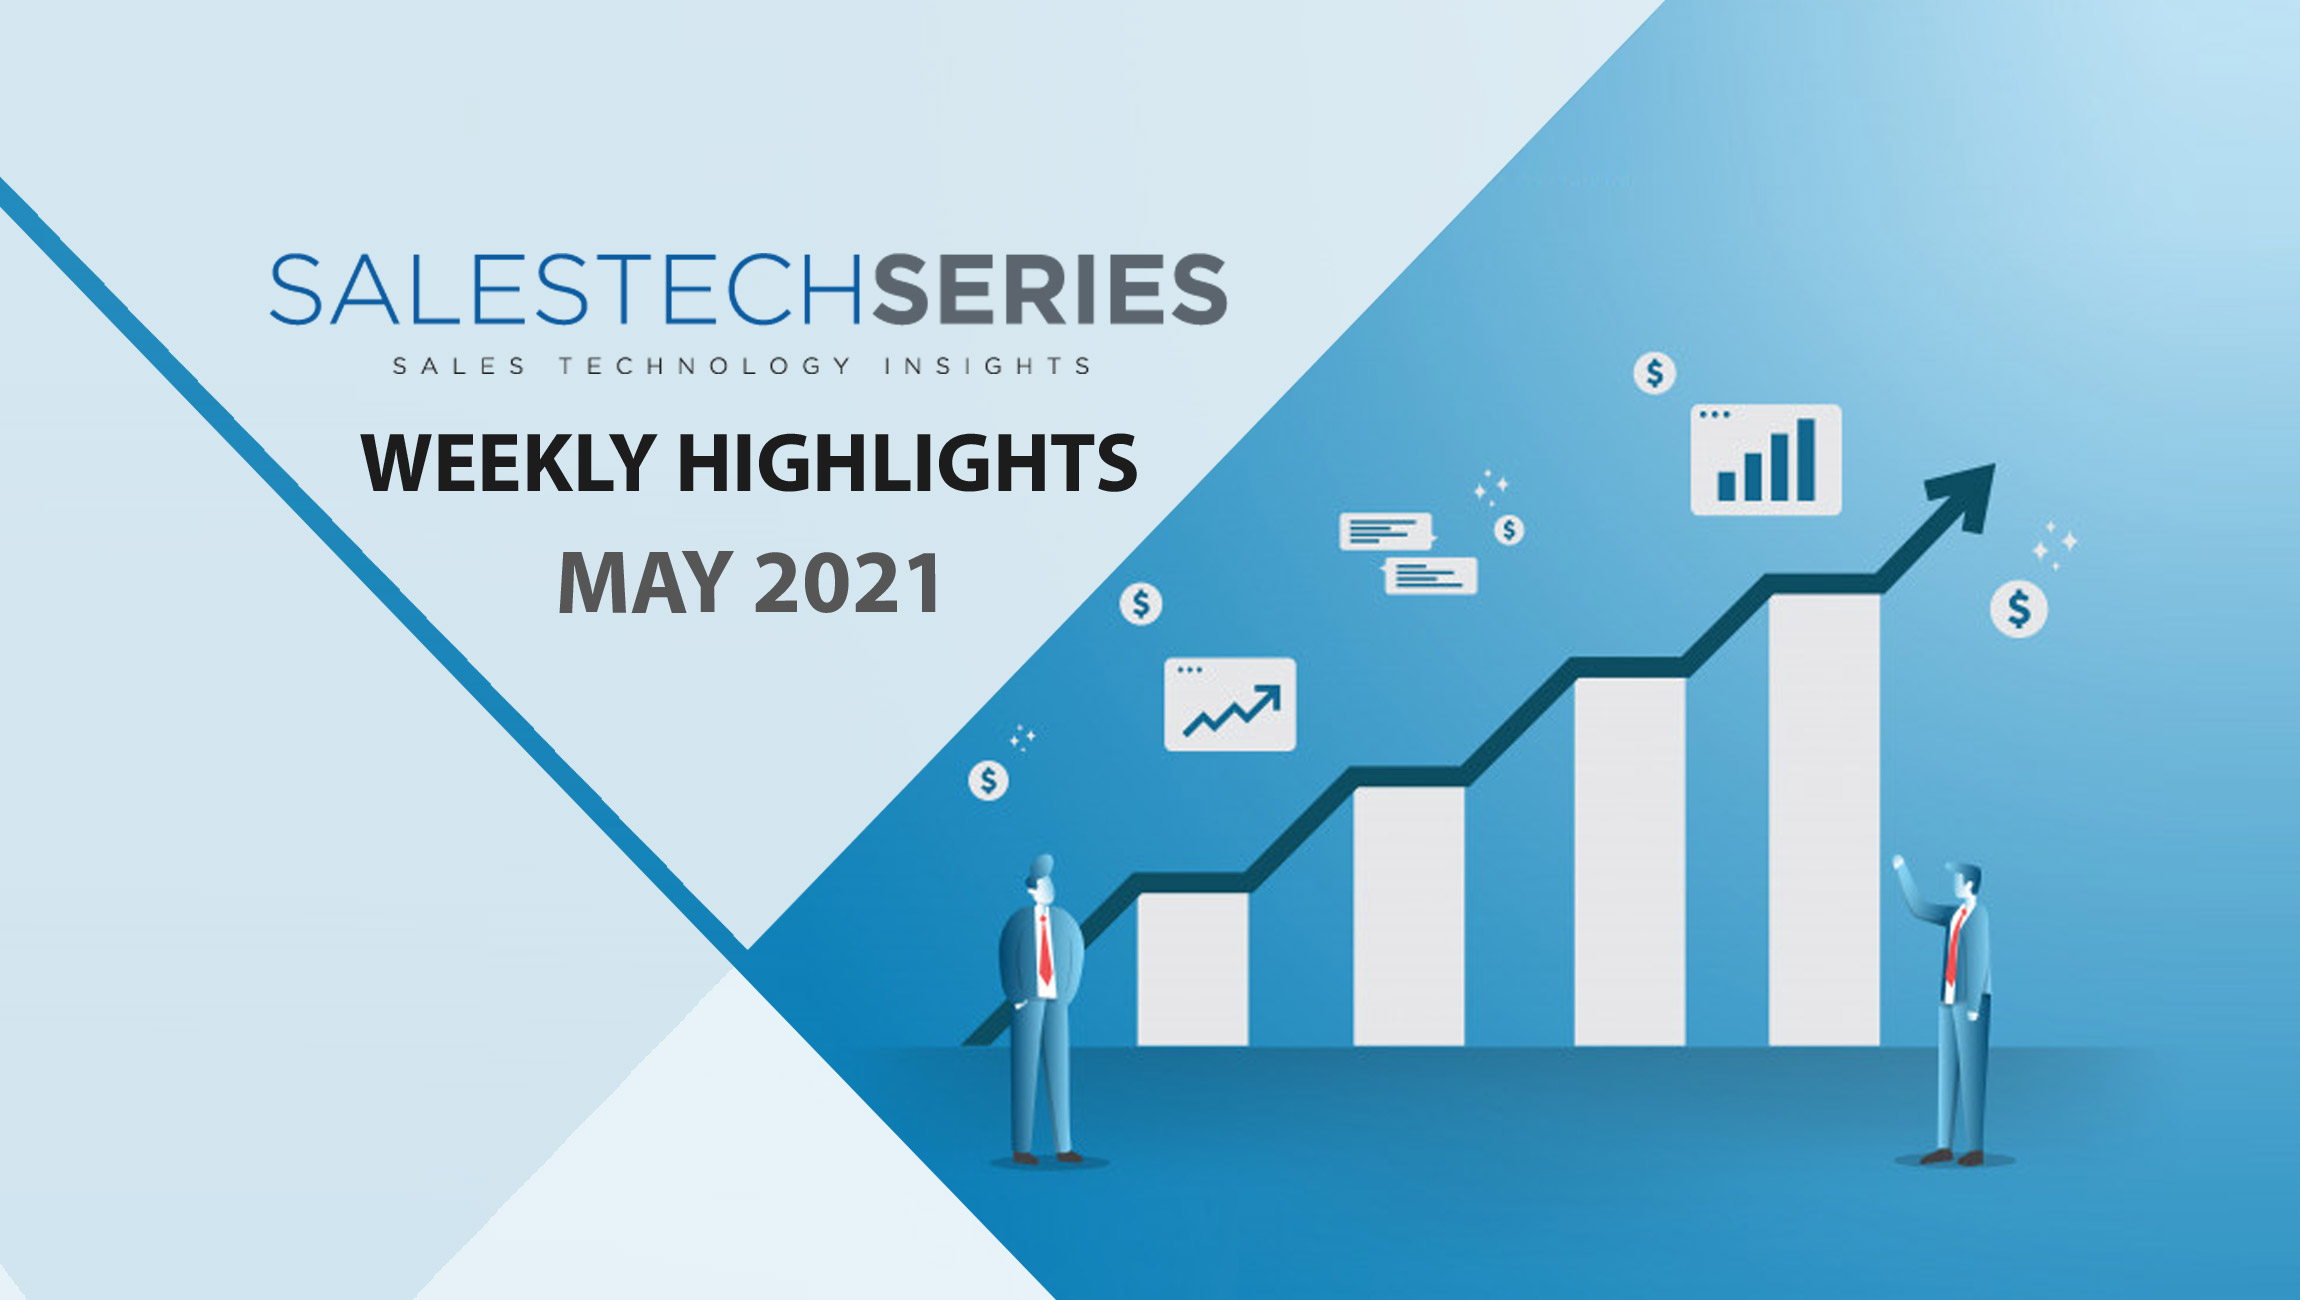 Sales Technology Highlights of The Week: 10th May-2021: Featuring Creatio, Shopify, Dun & Bradstreet, Mediafly